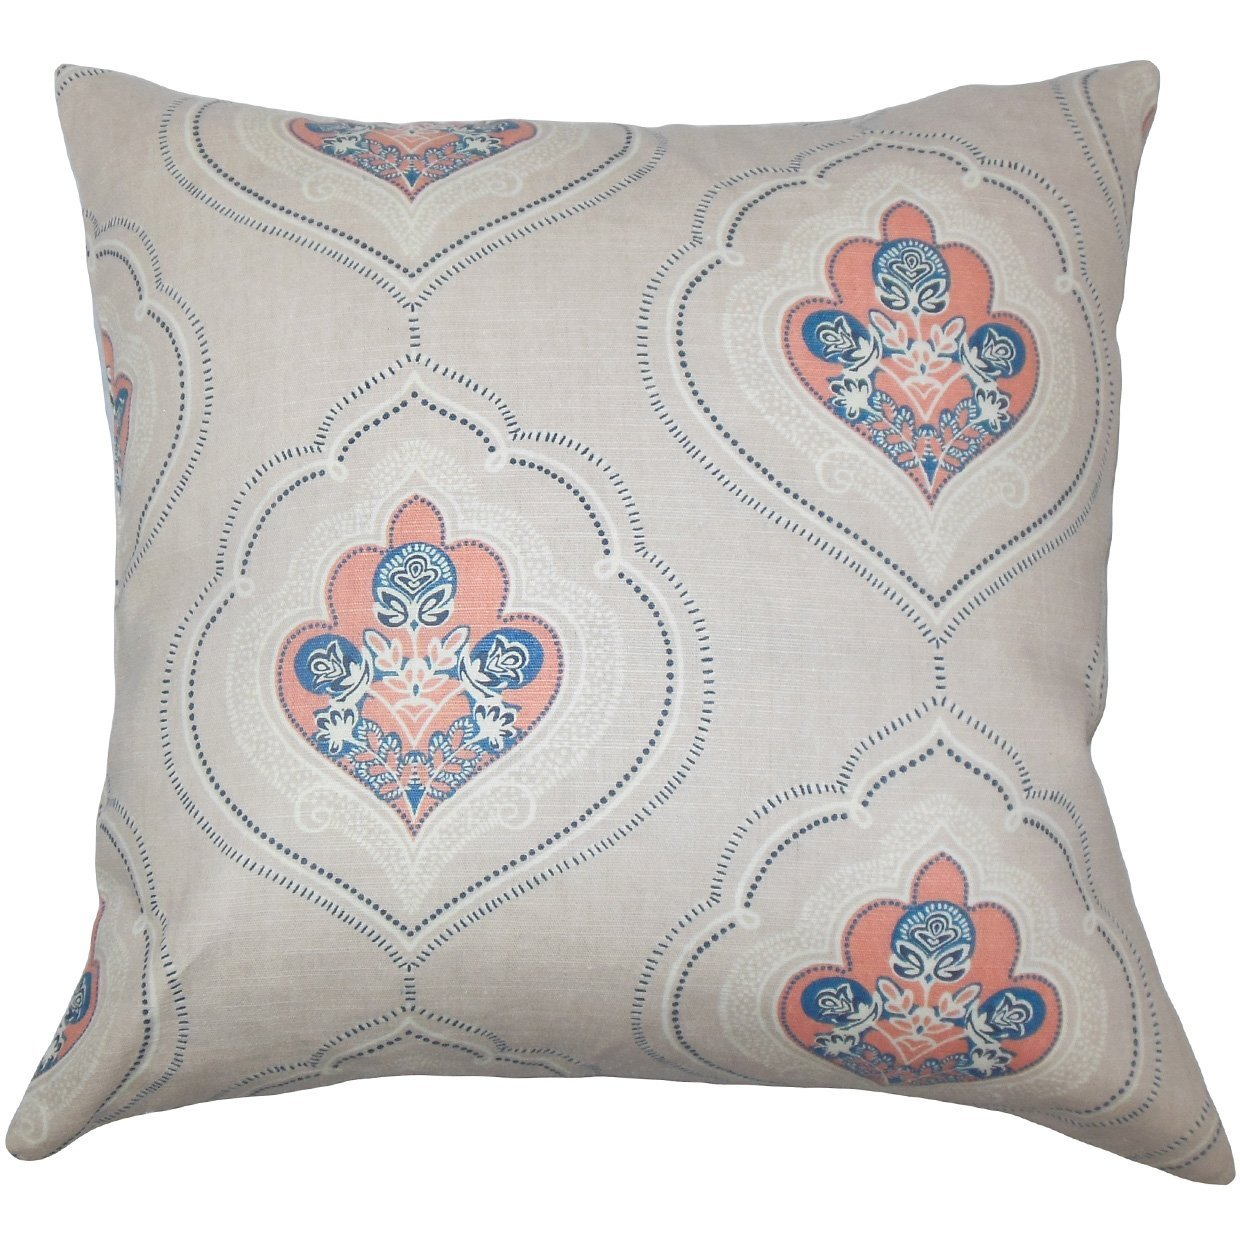 The Pillow Collection Aafje Floral Bedding Sham Coral King//20 x 36